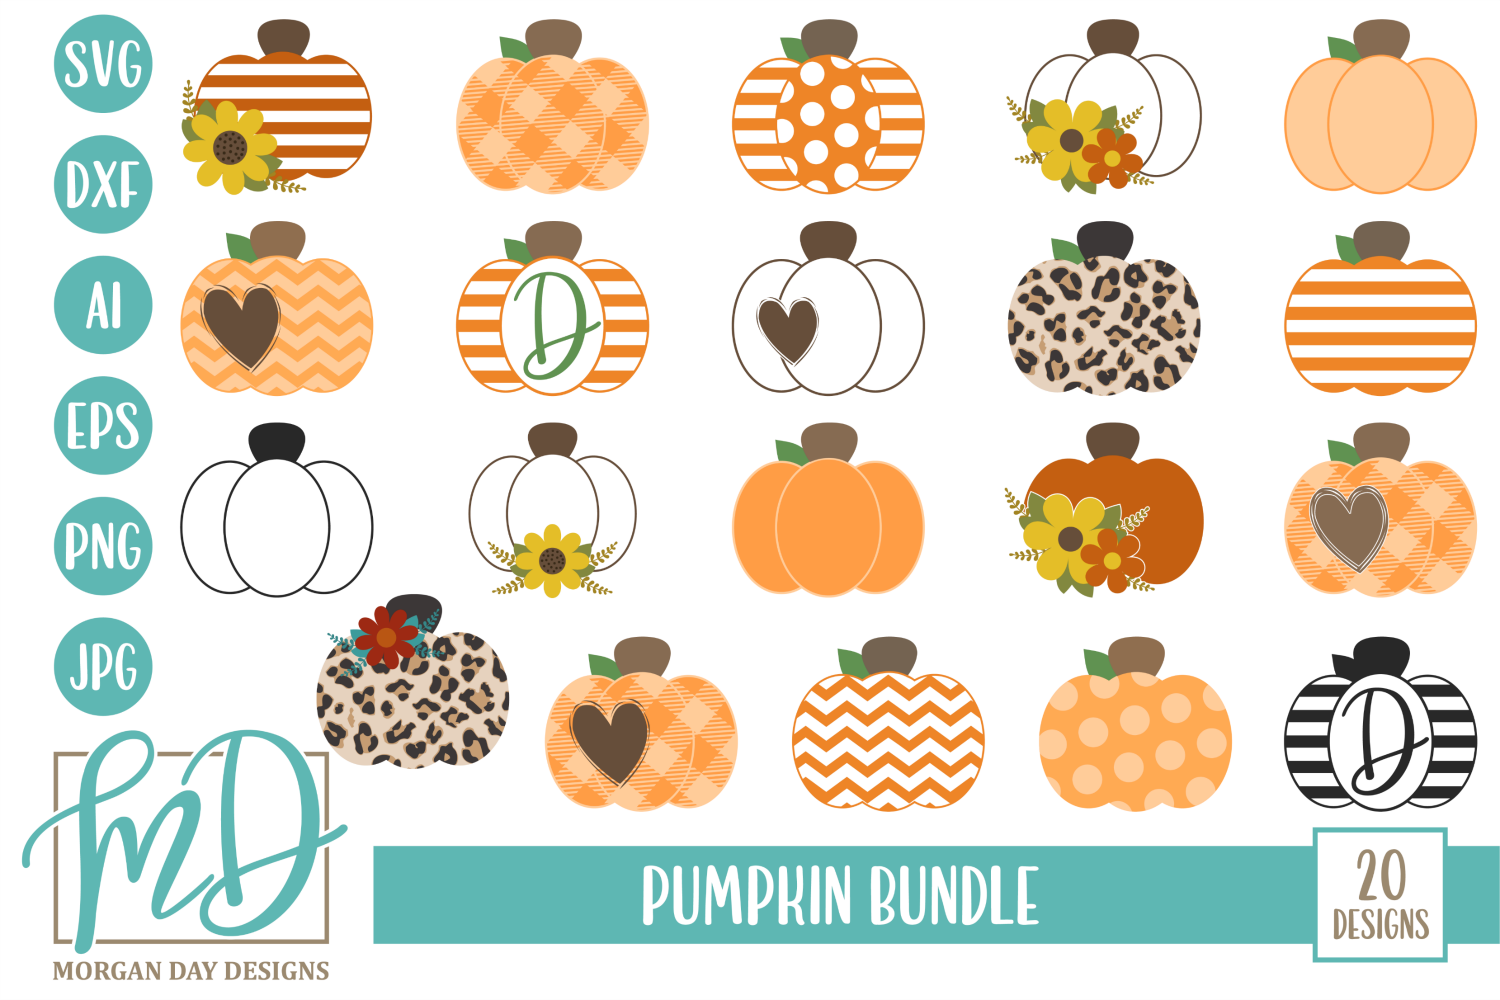 Download Free Pumpkin Bundle Graphic By Morgan Day Designs Creative Fabrica for Cricut Explore, Silhouette and other cutting machines.